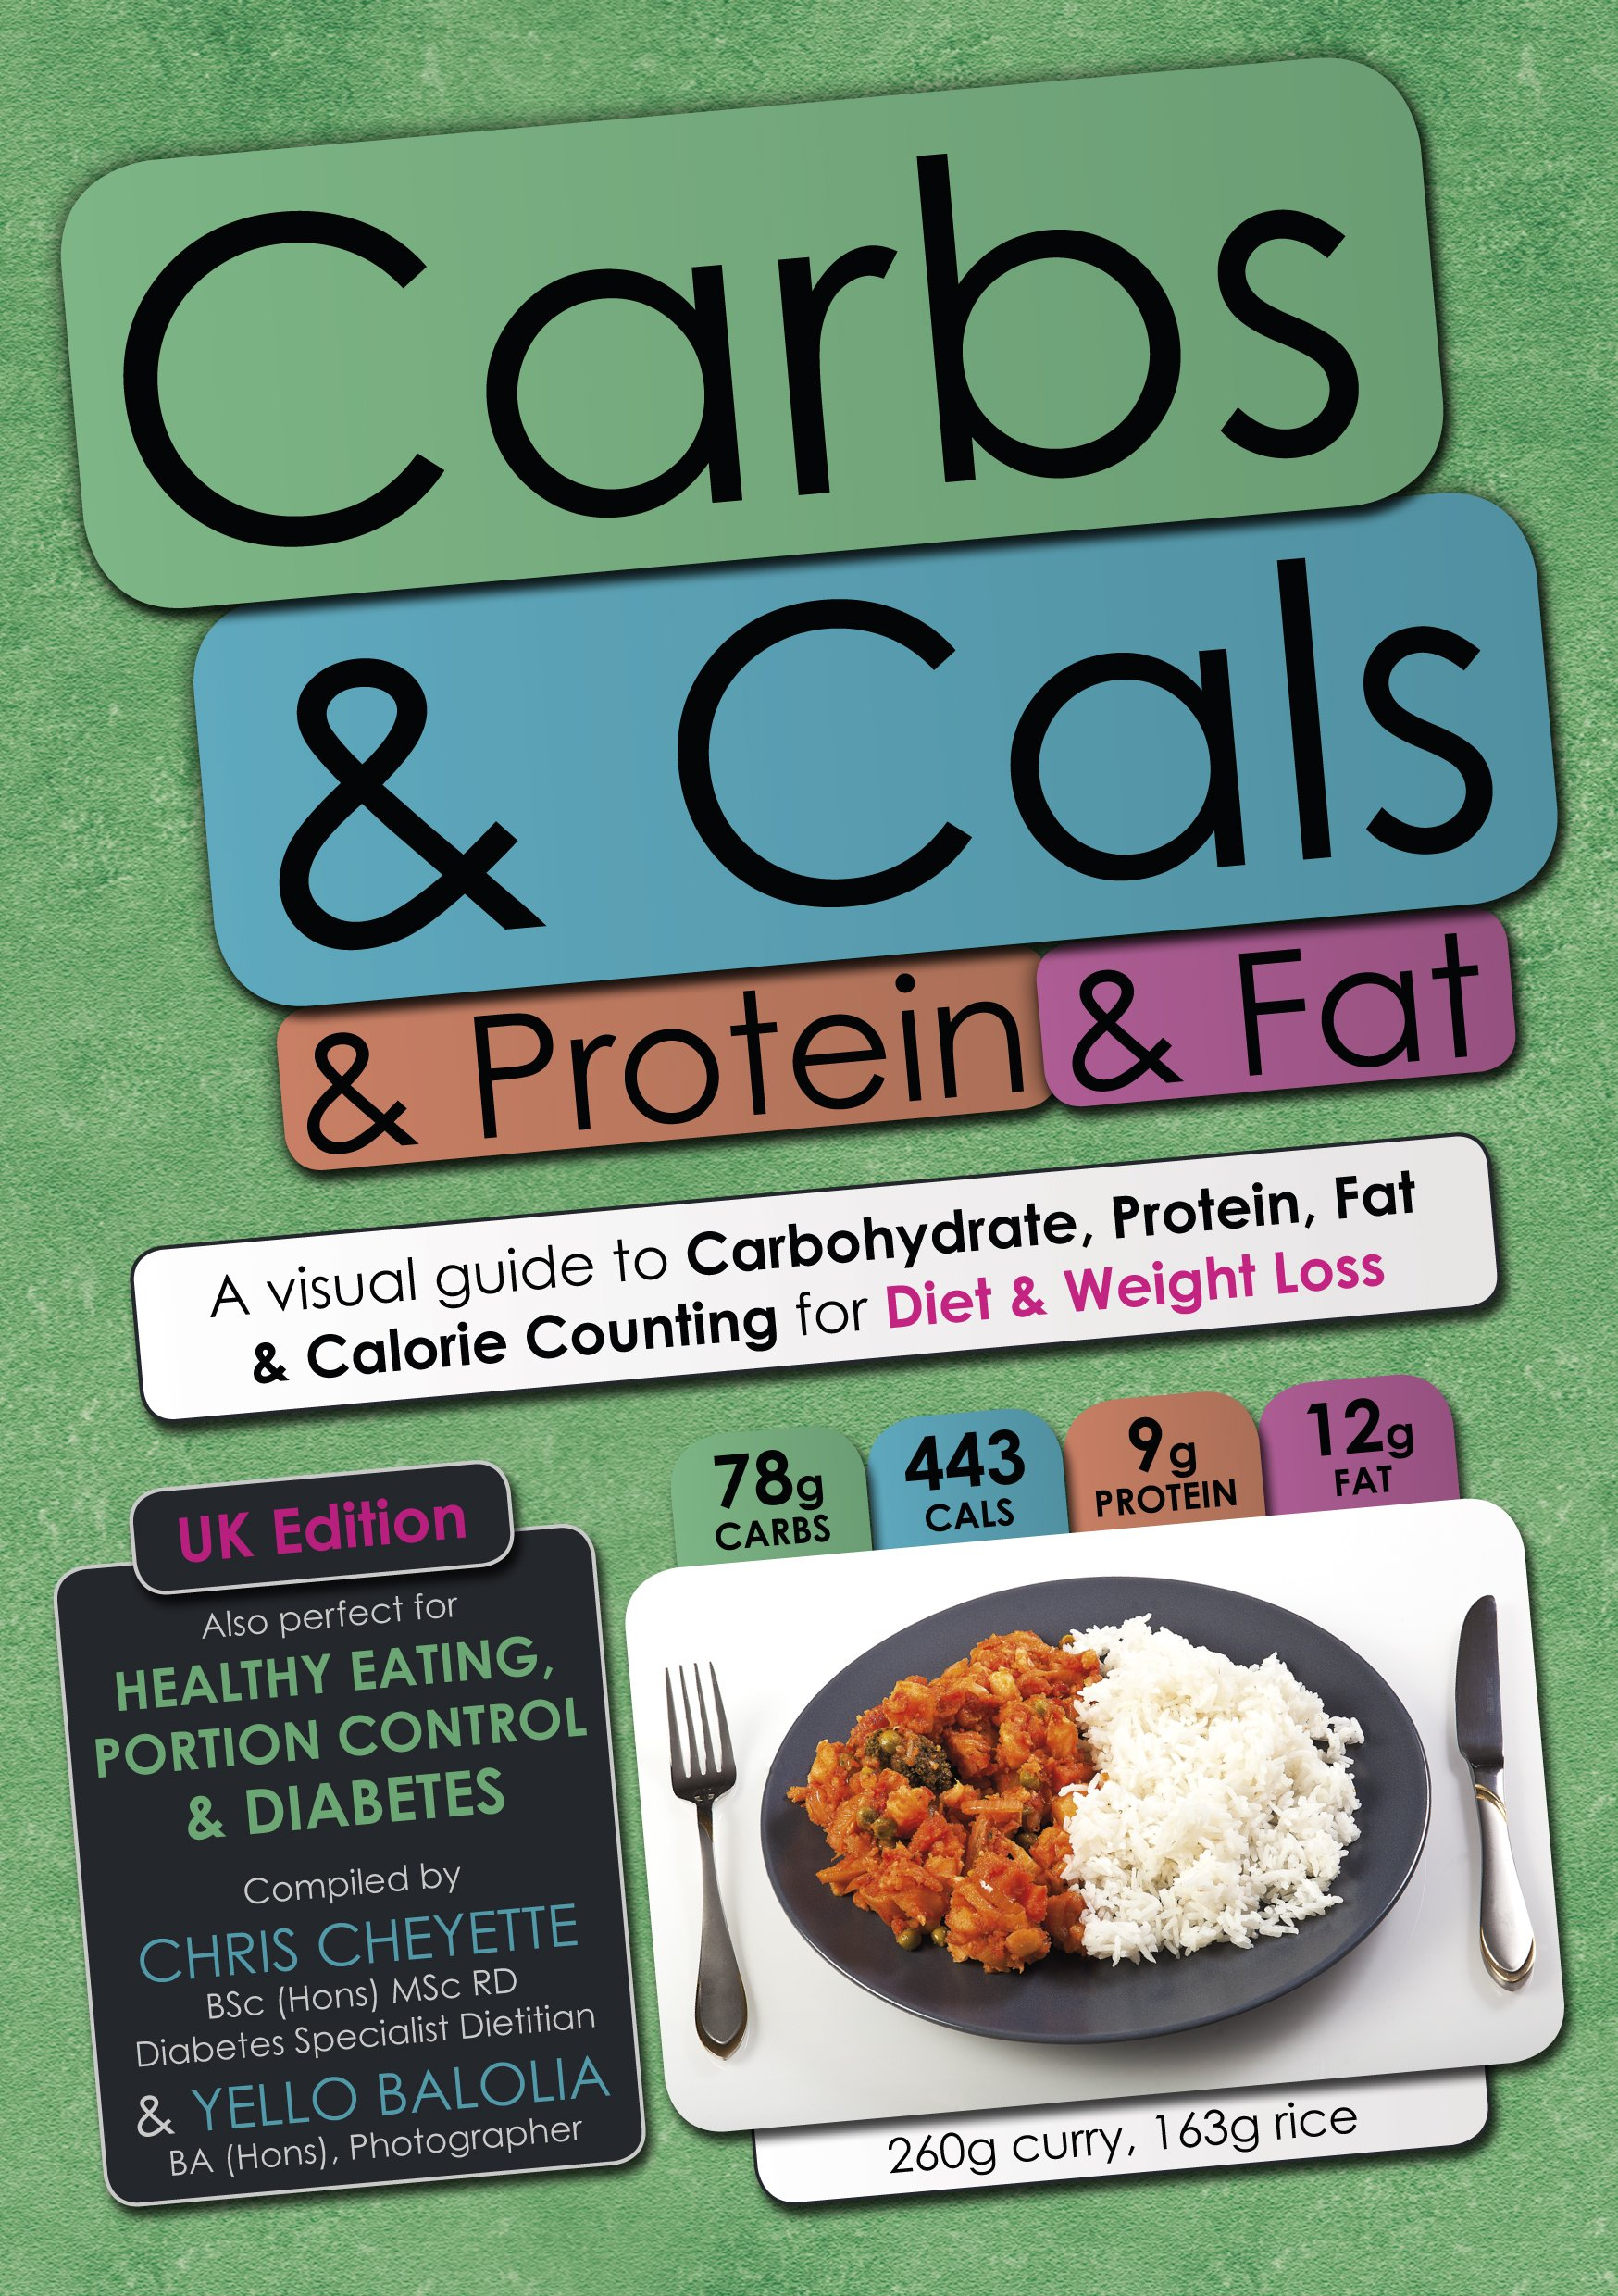 Buy carbs cals protein fat a visual guide to carbohydrate buy carbs cals protein fat a visual guide to carbohydrate protein fat calorie counting for diet weight loss book online at low prices in india ccuart Images